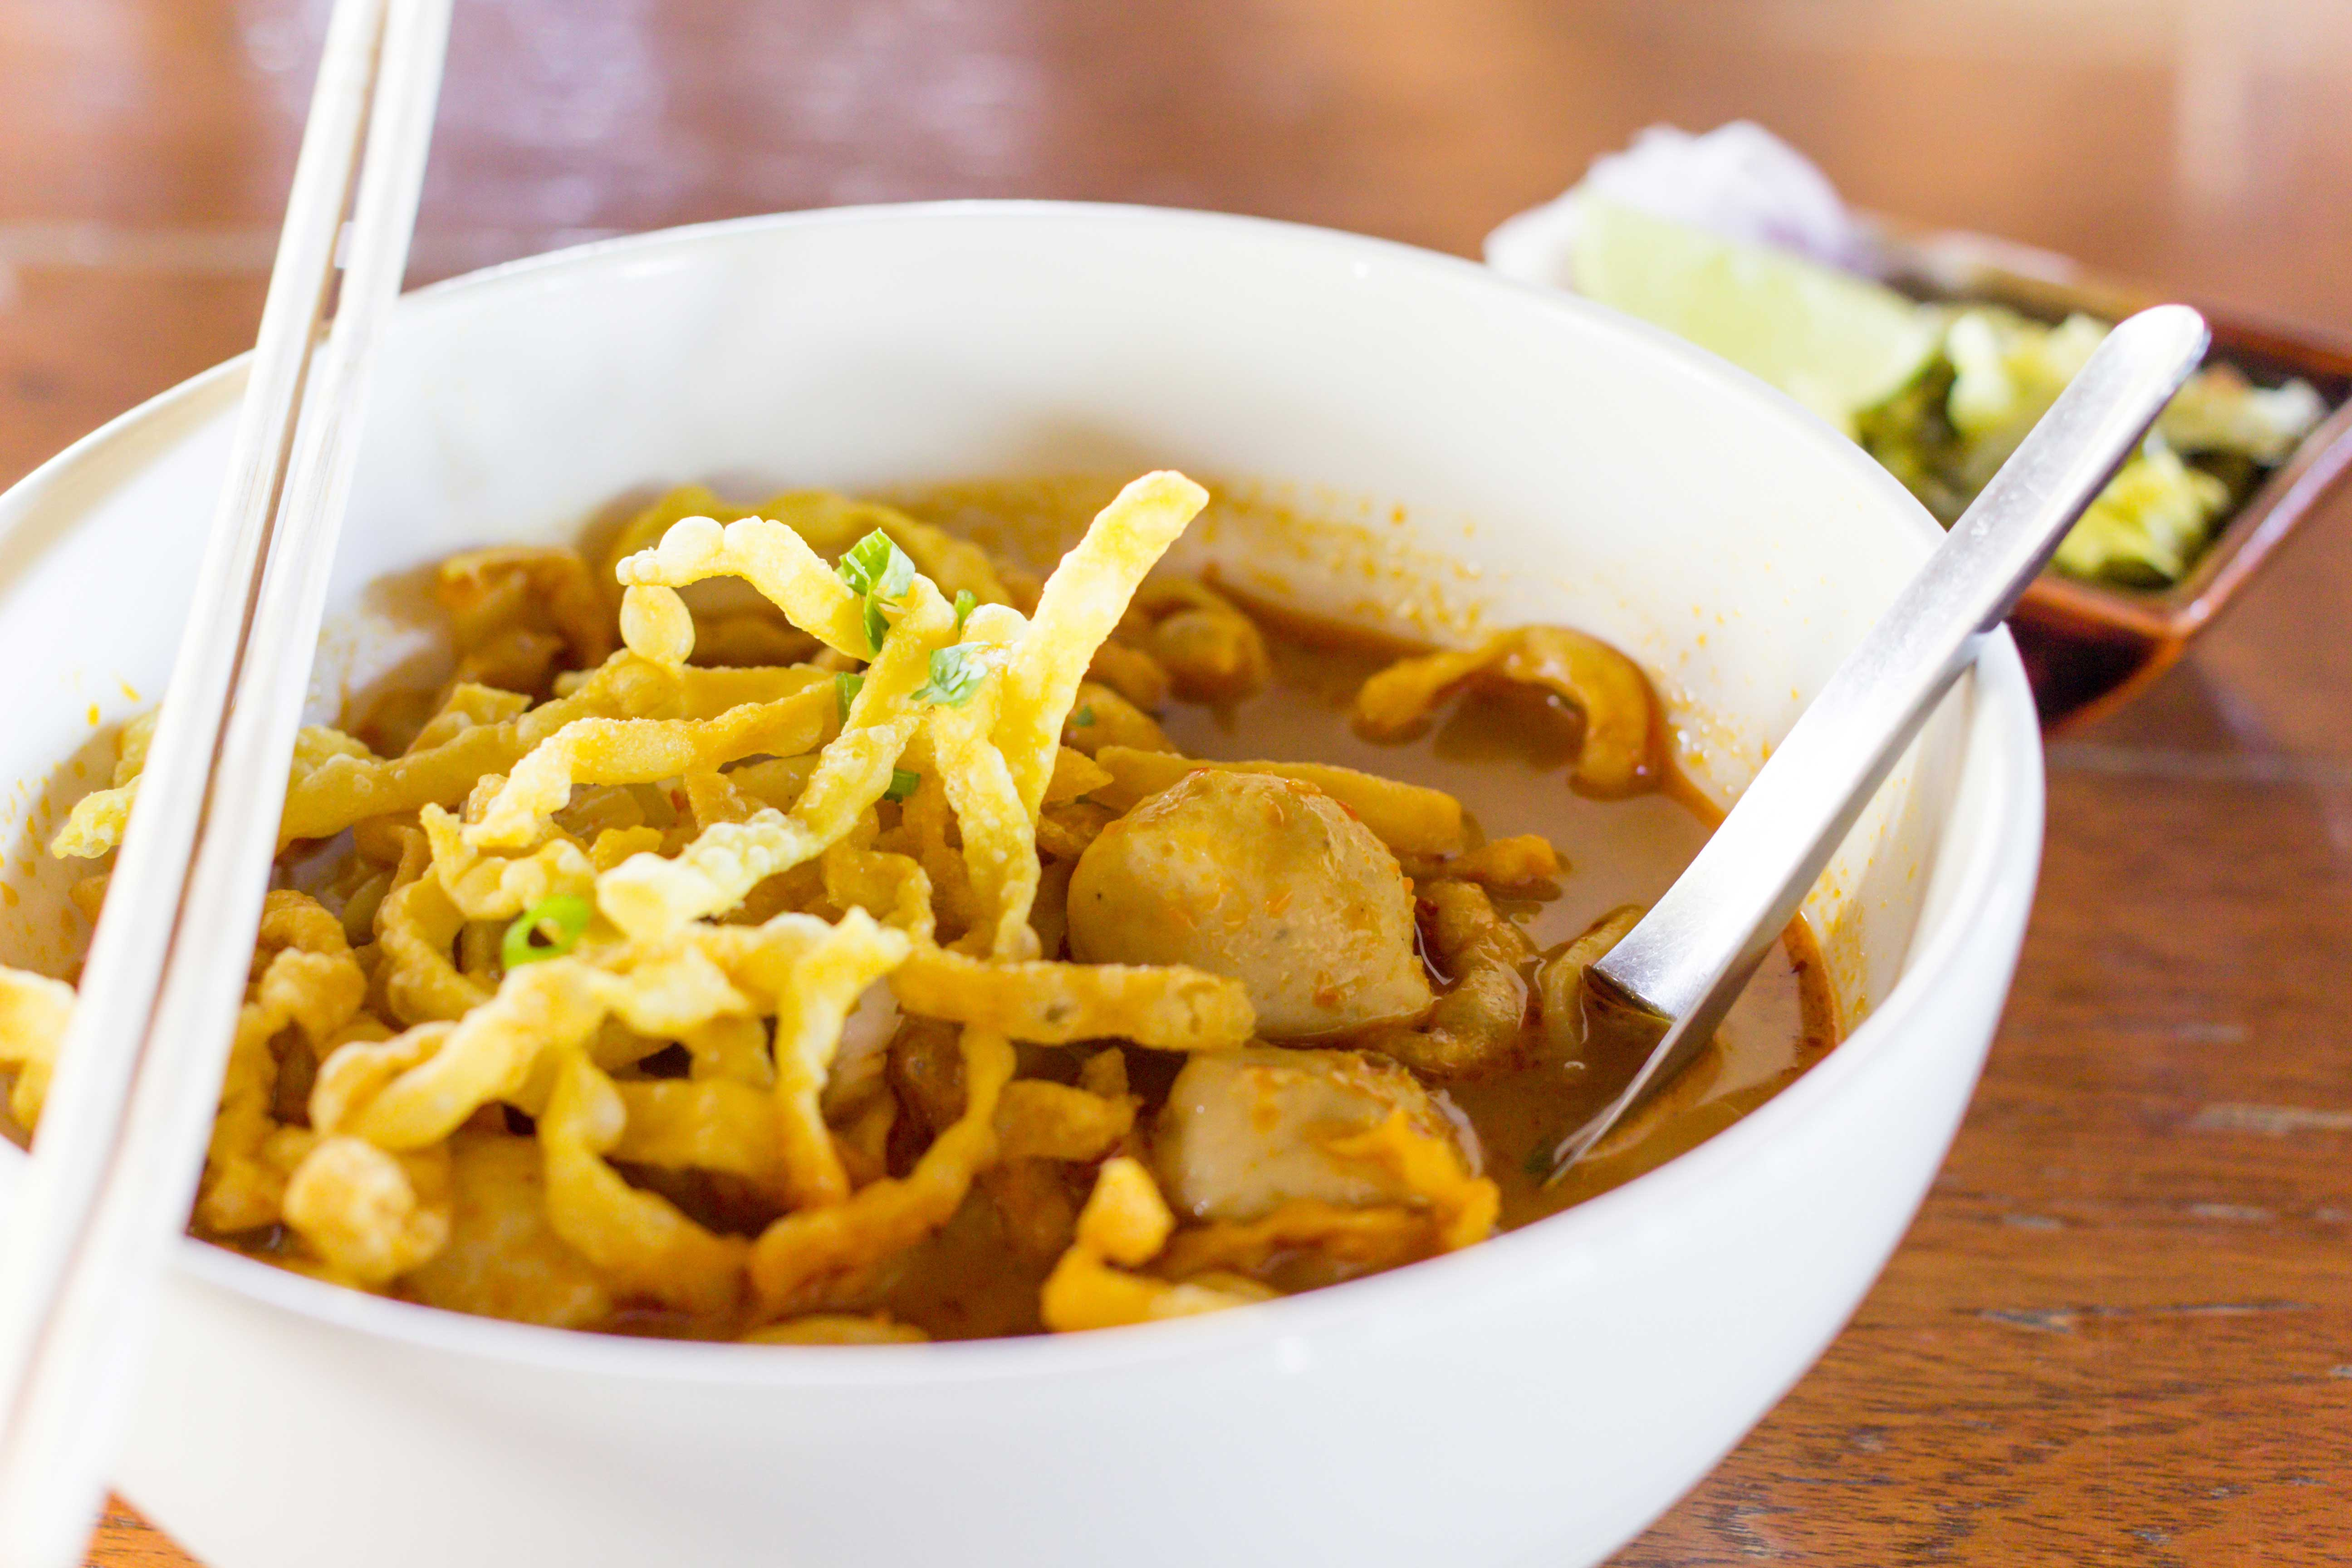 Delicious Khao Soi, northern Thai cuisine at its best!